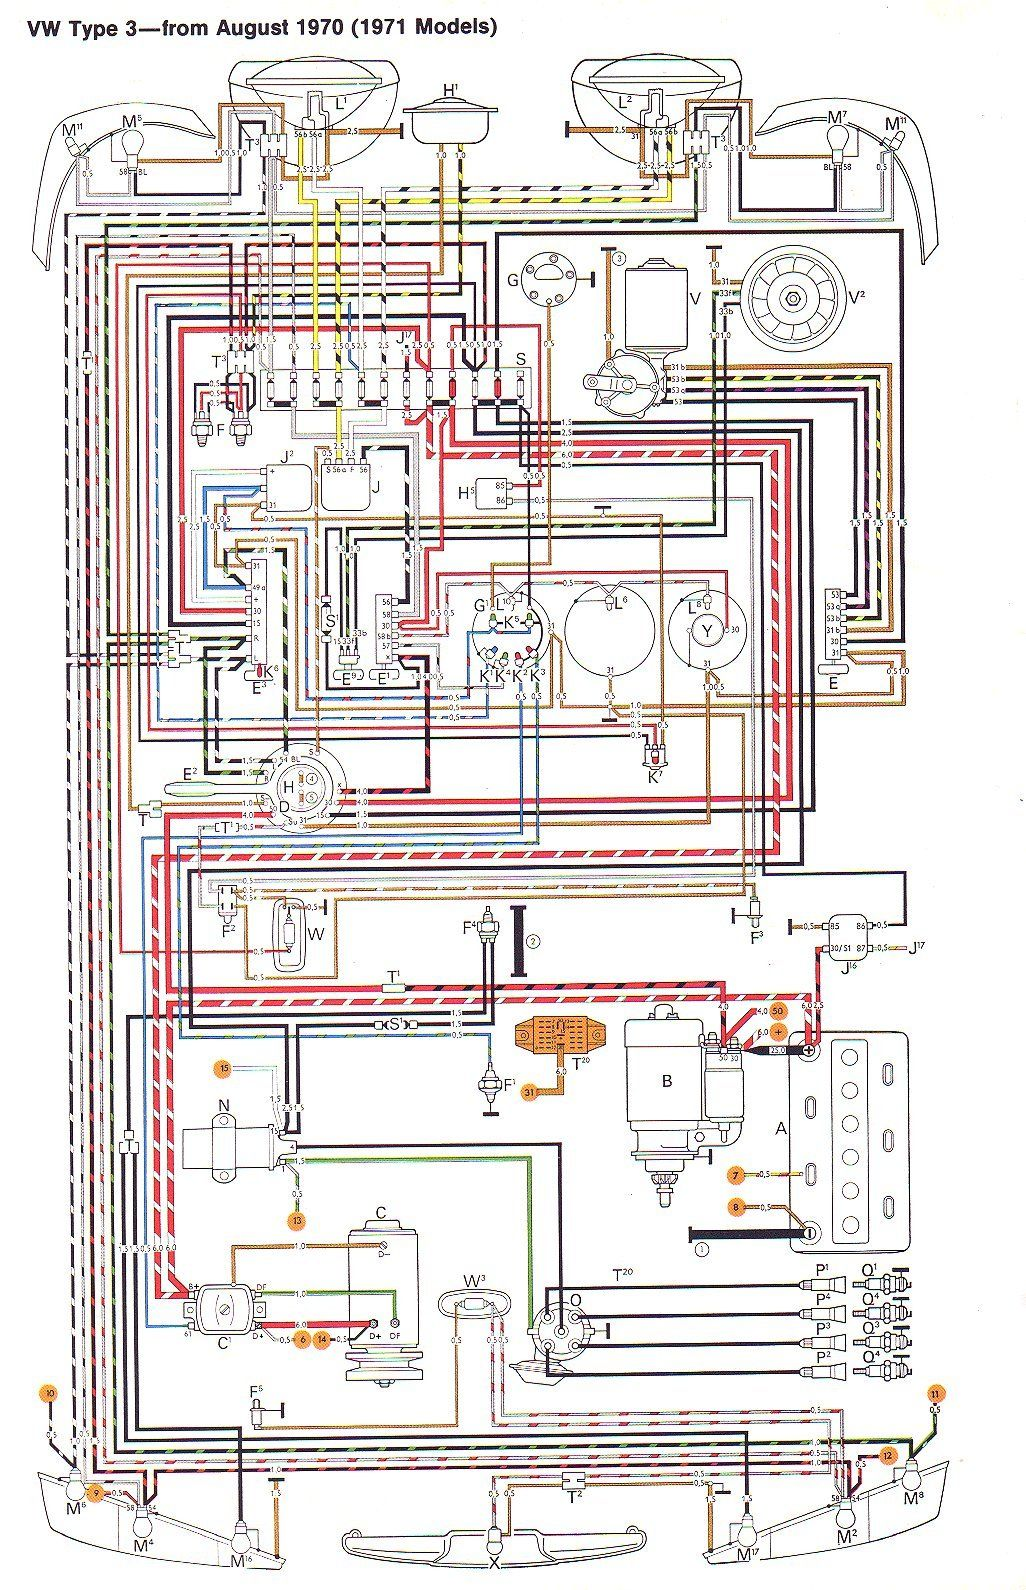 volkswagen t3 wiring diagram volkswagen wiring diagrams online 71 vw t3 wiring diagram car projects